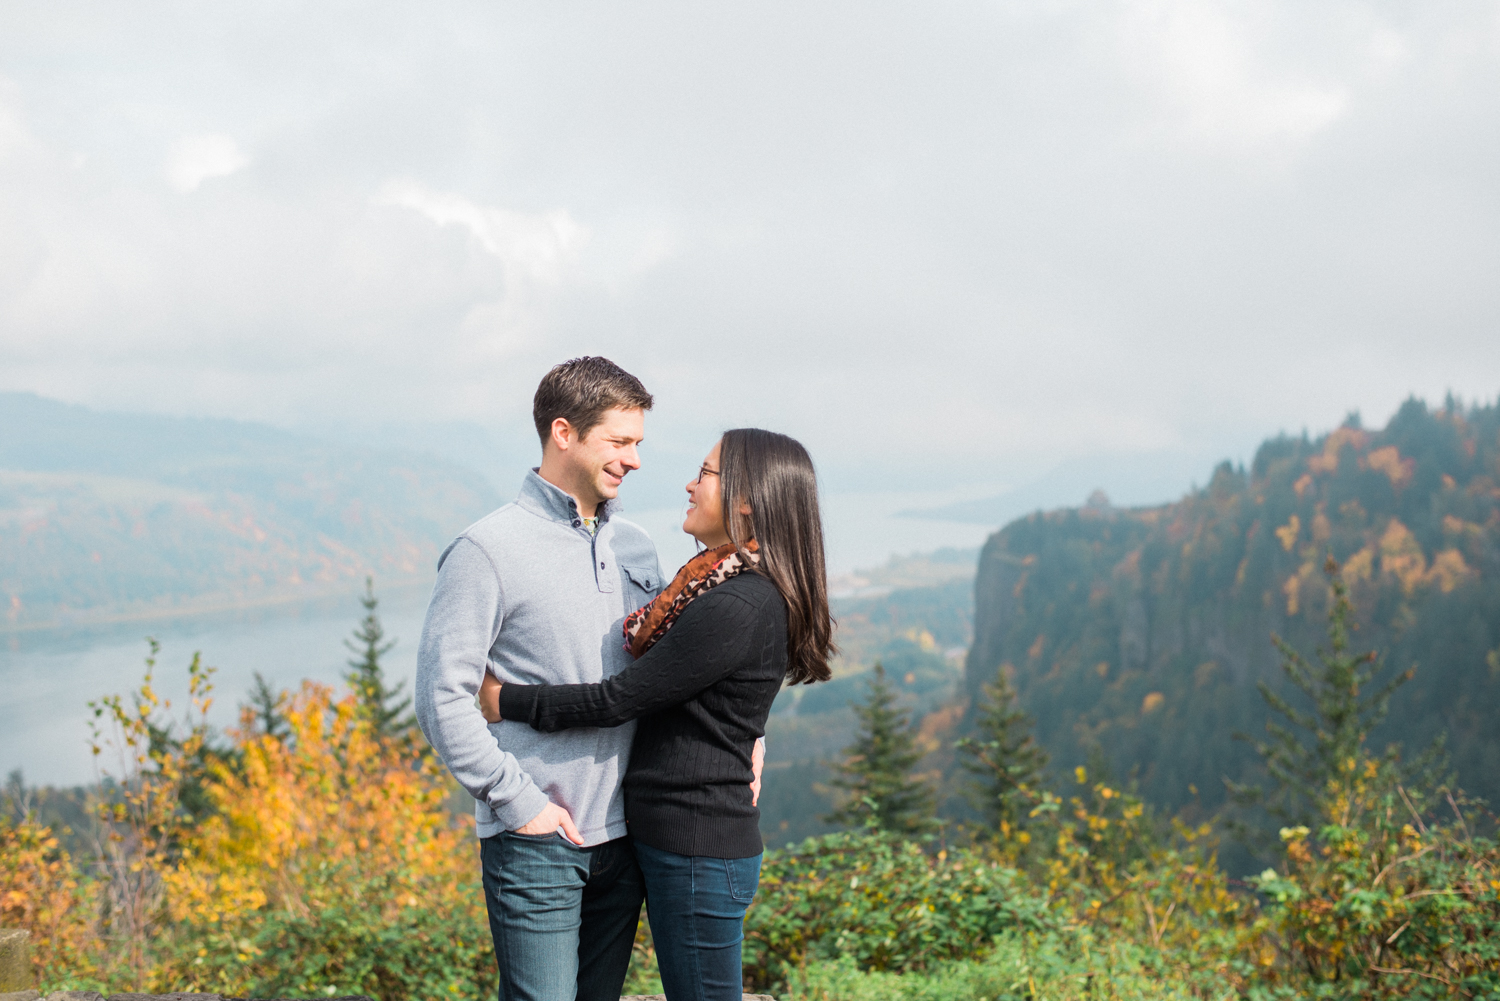 portland-engagement-columbia-river-gorge-latourell-waterfall-autumn-fall-crown-point-shelley-marie-photo-02.jpg